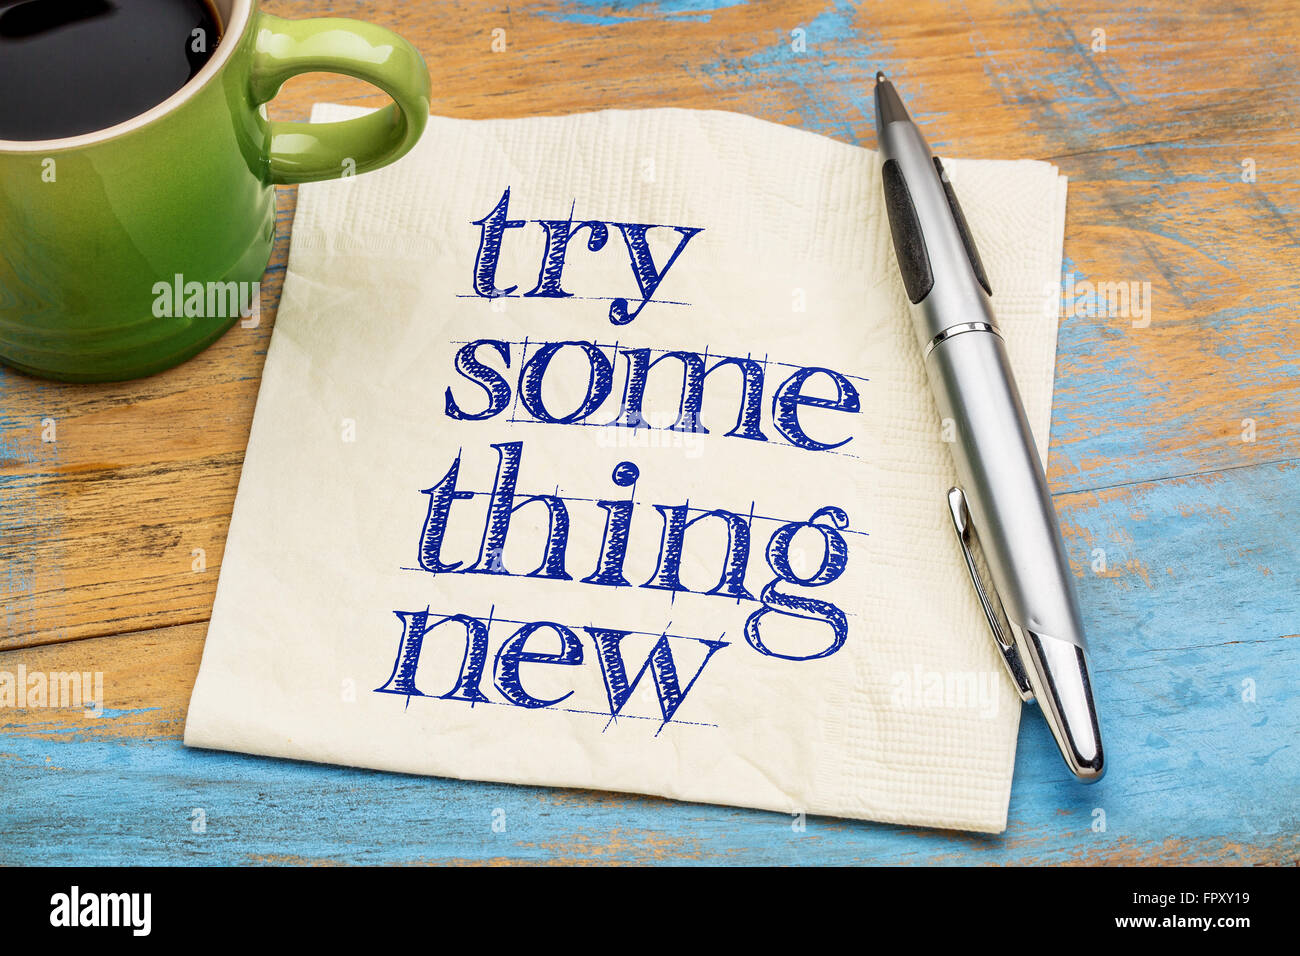 Try something new advice or reminder - handwriting on a napkin with a cup of coffee - Stock Image